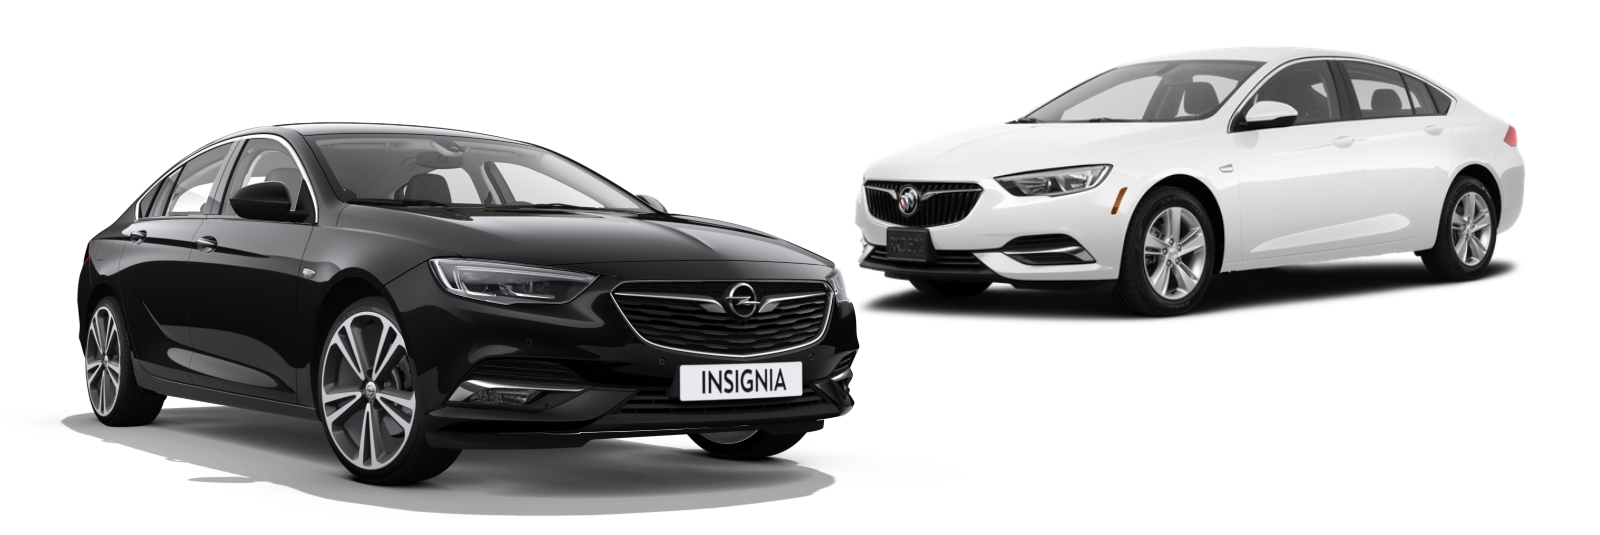 Opel Insignia - Buick Regal